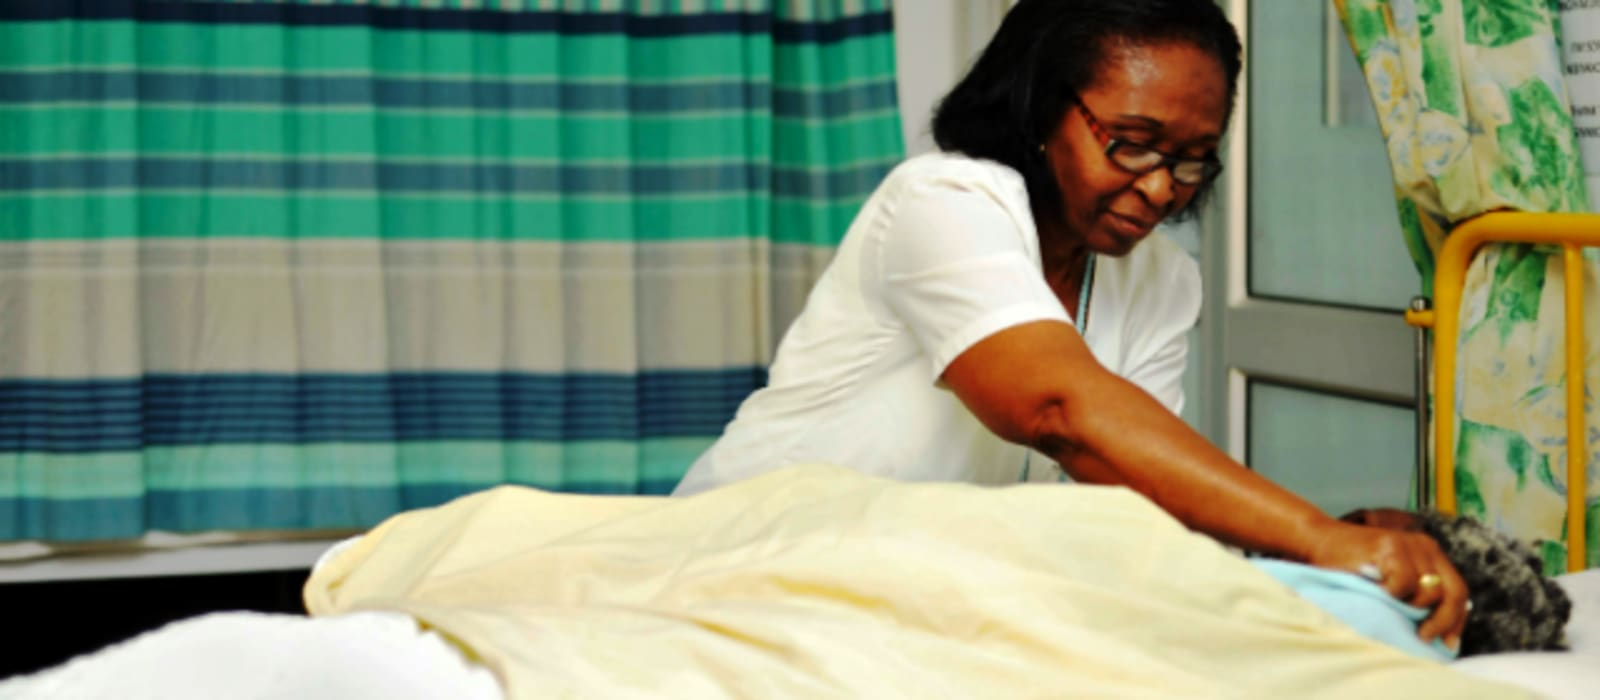 Healthcare worker arranging a blanket across a patient in bed